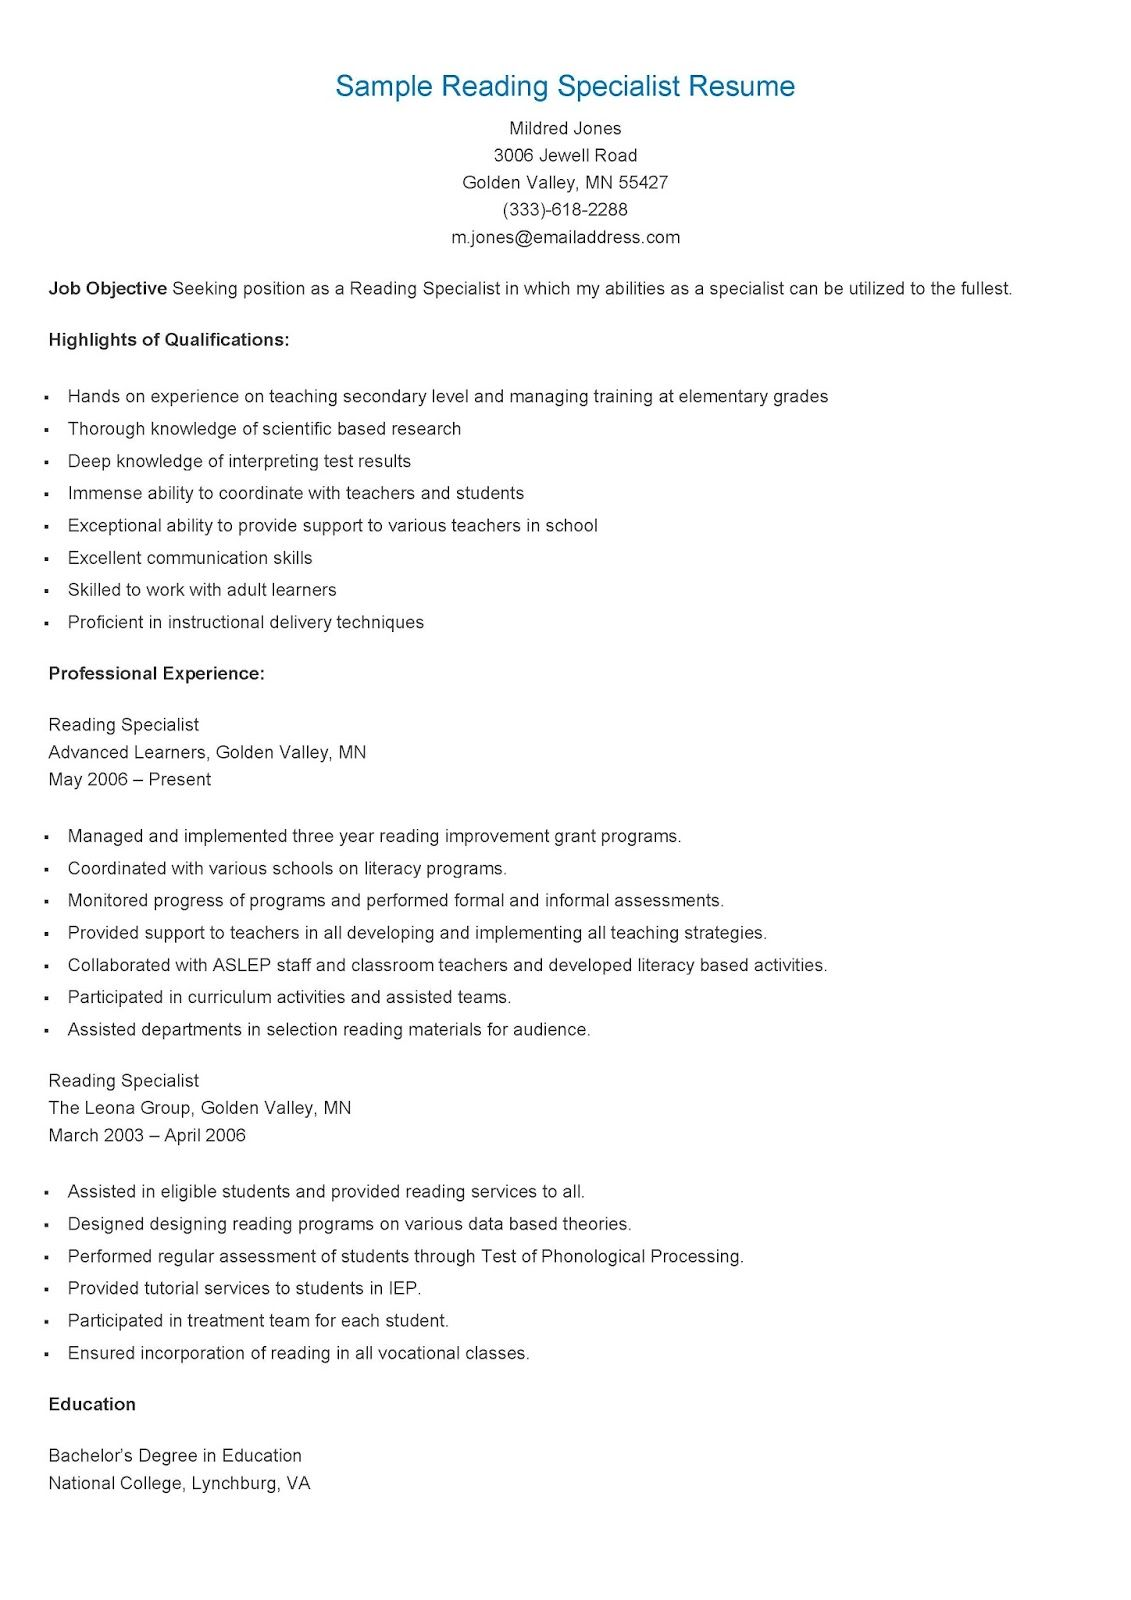 sample reading specialist resume